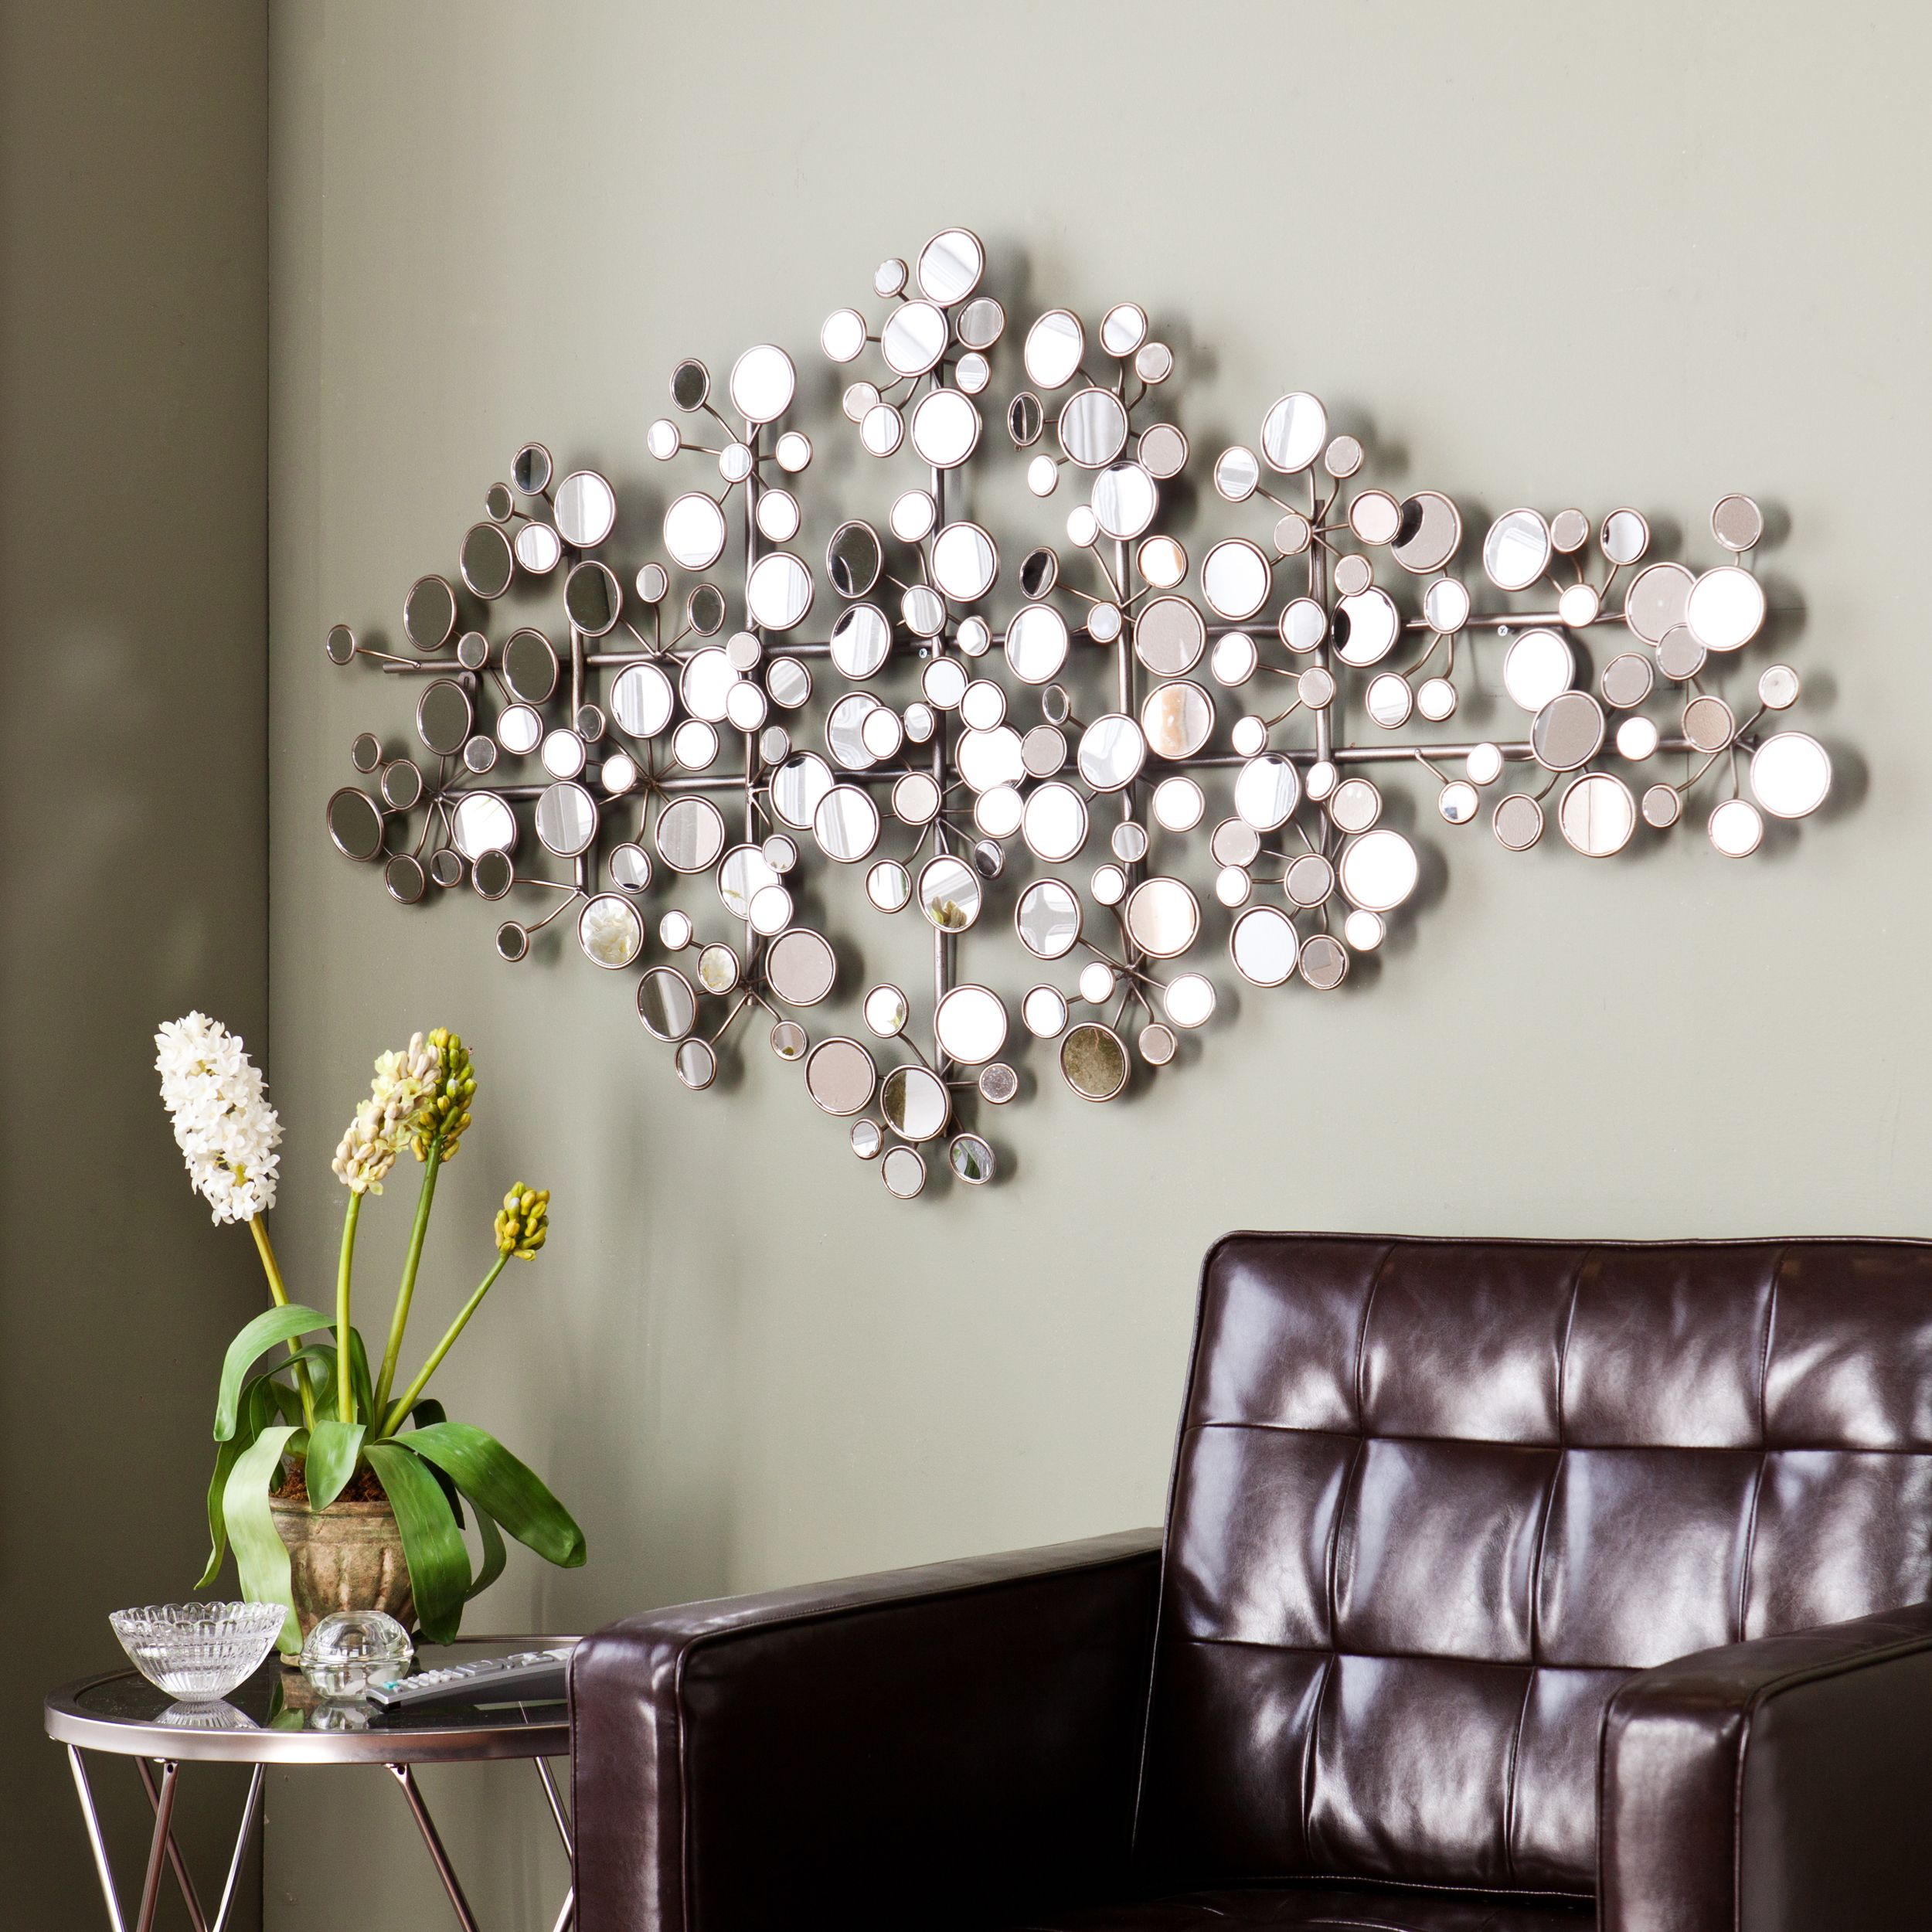 This Upton Home Olivia Mirrored Metal Wall Sculpture throughout Alvis Traditional Metal Wall Decor (Image 26 of 30)